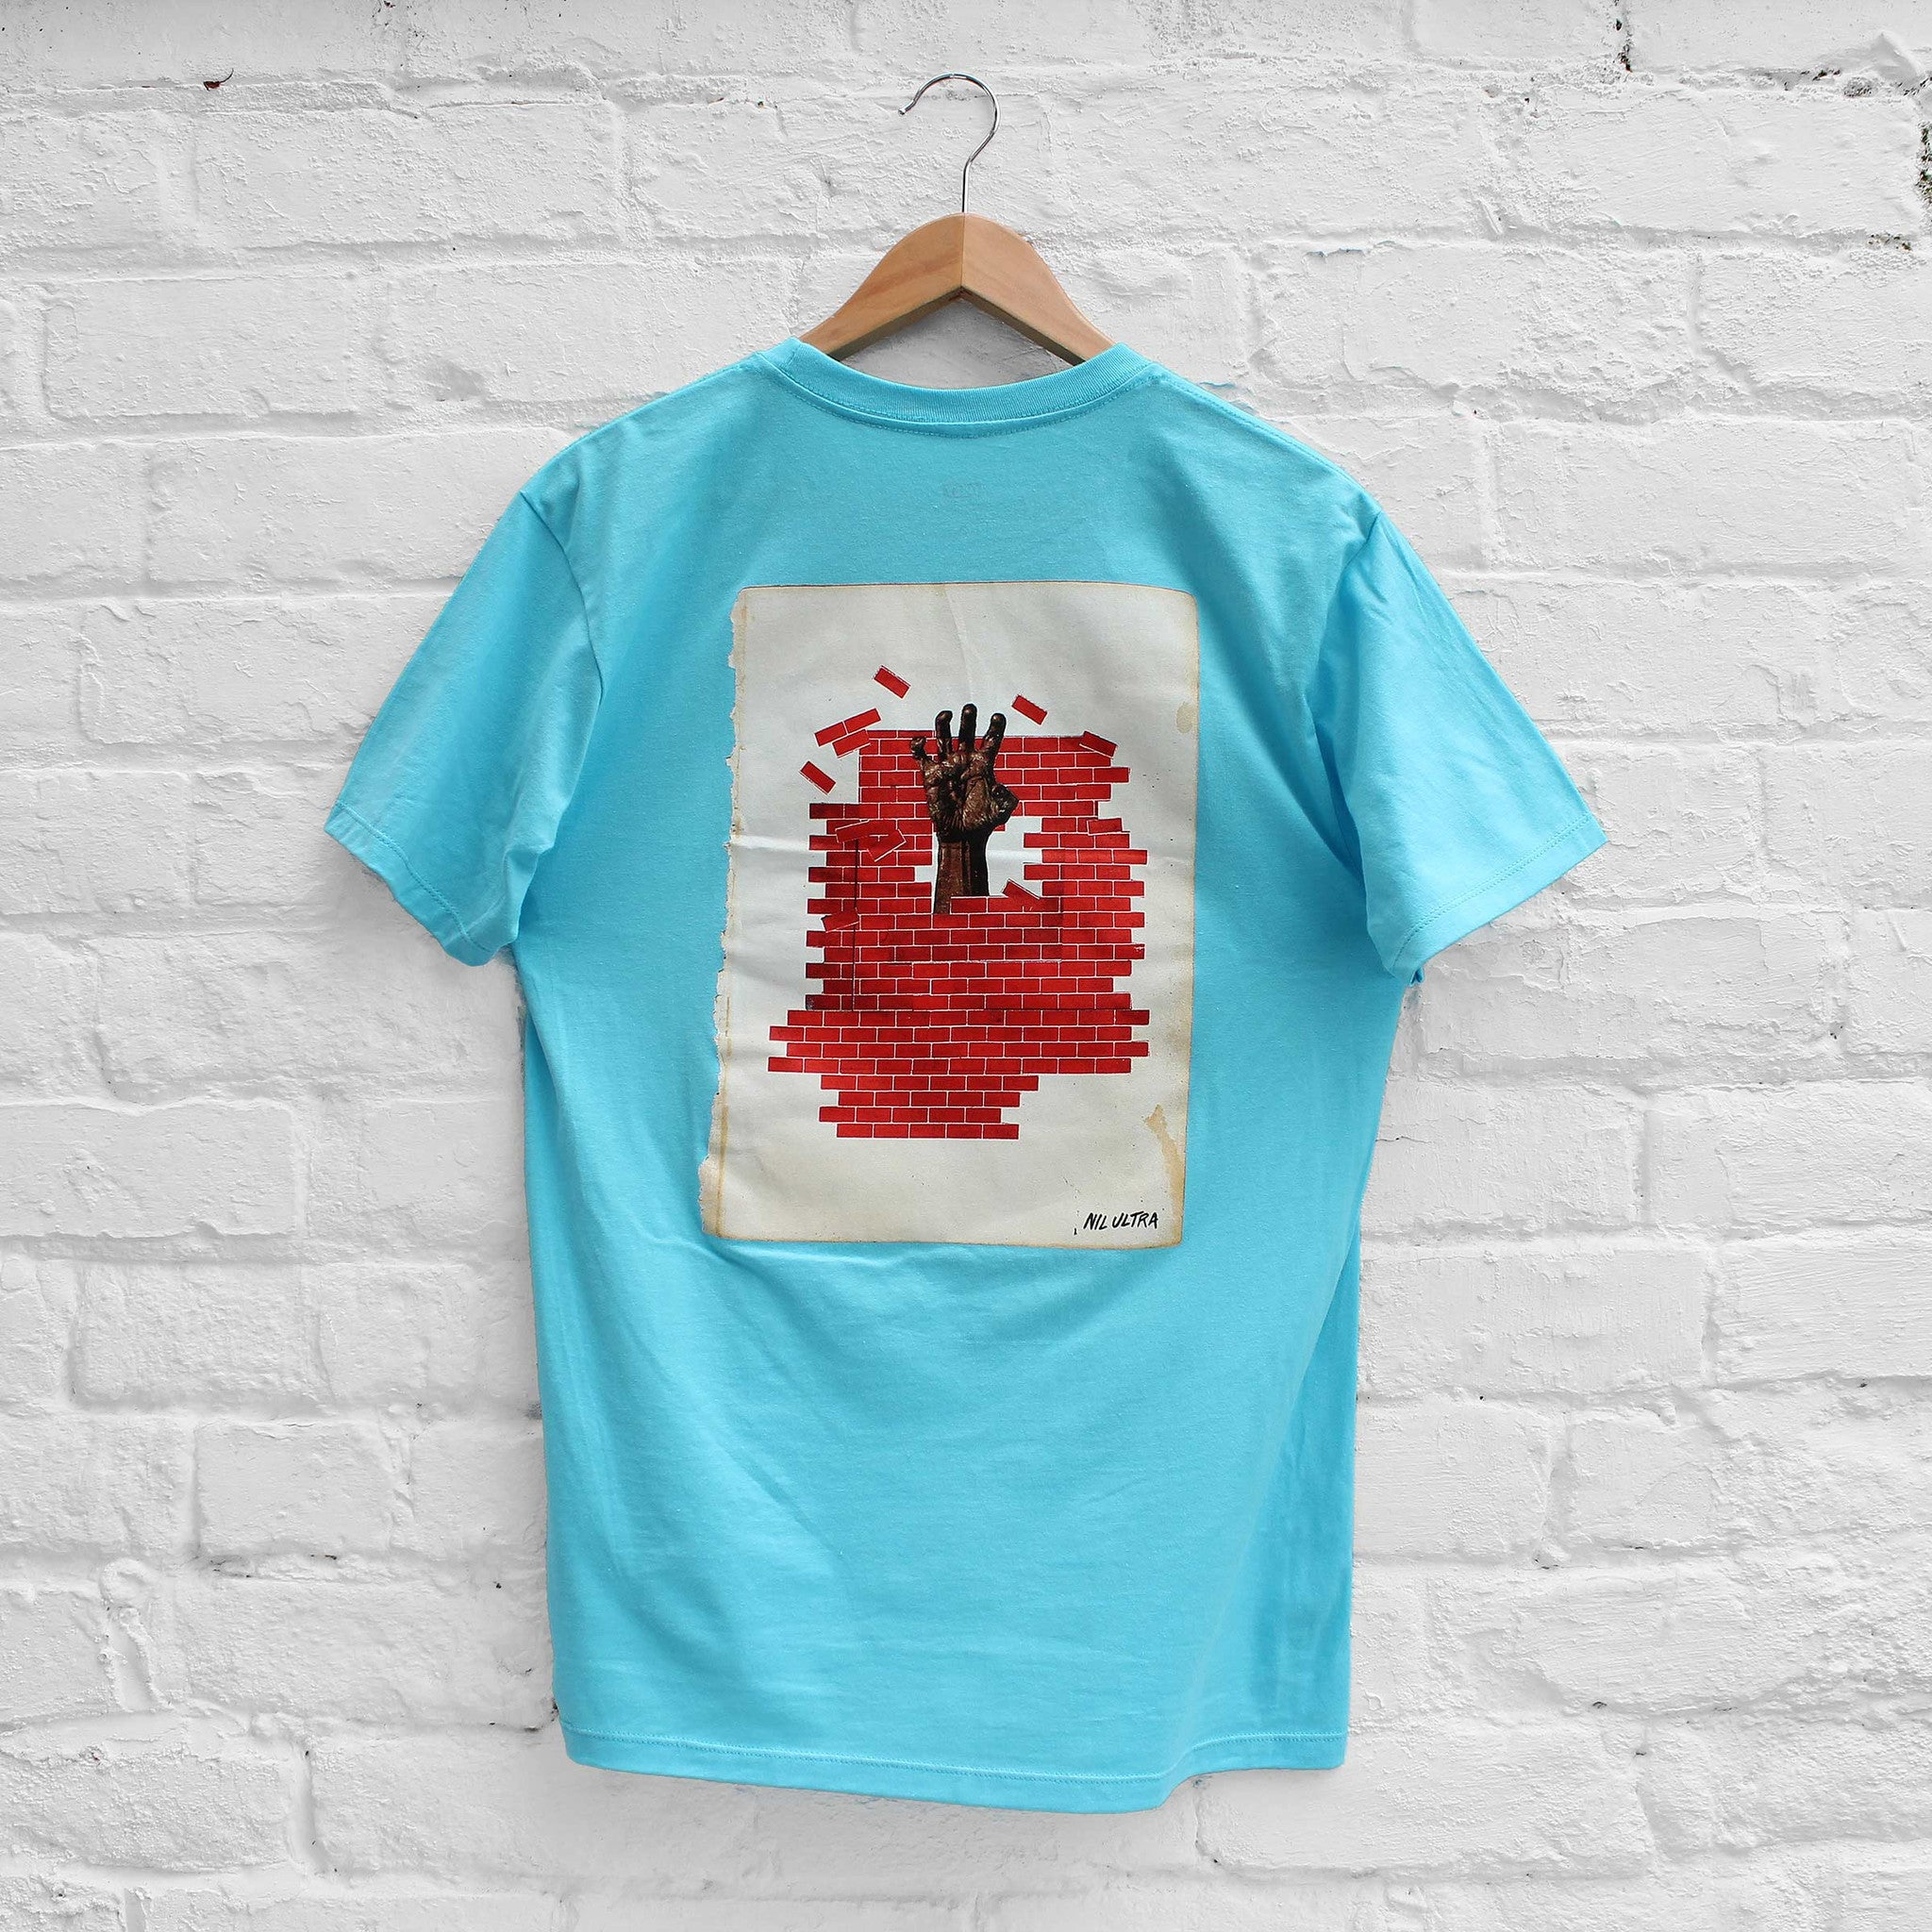 Obey In Ruins T-Shirt